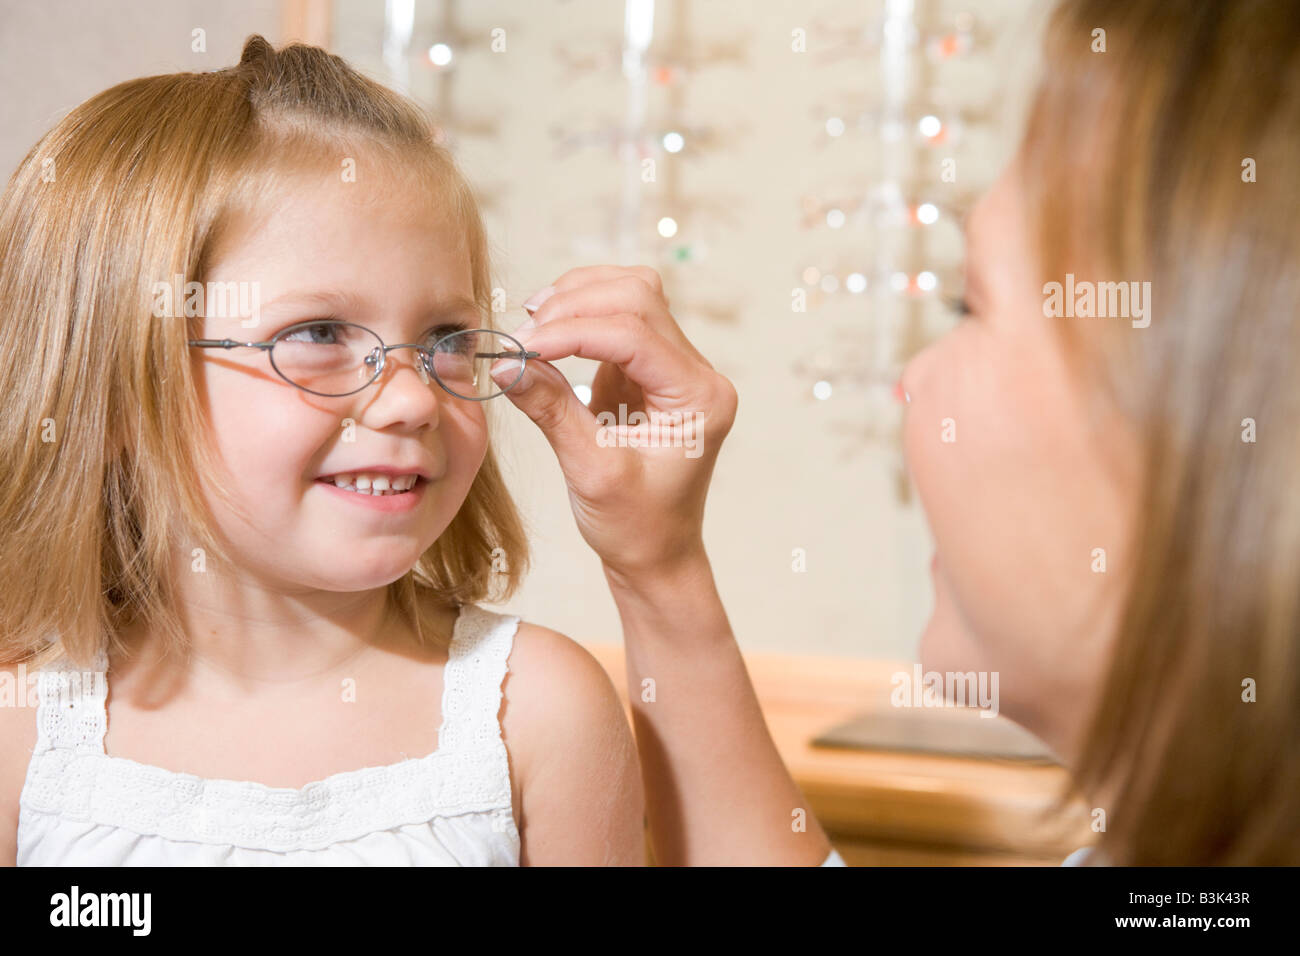 Woman trying eyeglasses on young girl at optometrists smiling - Stock Image